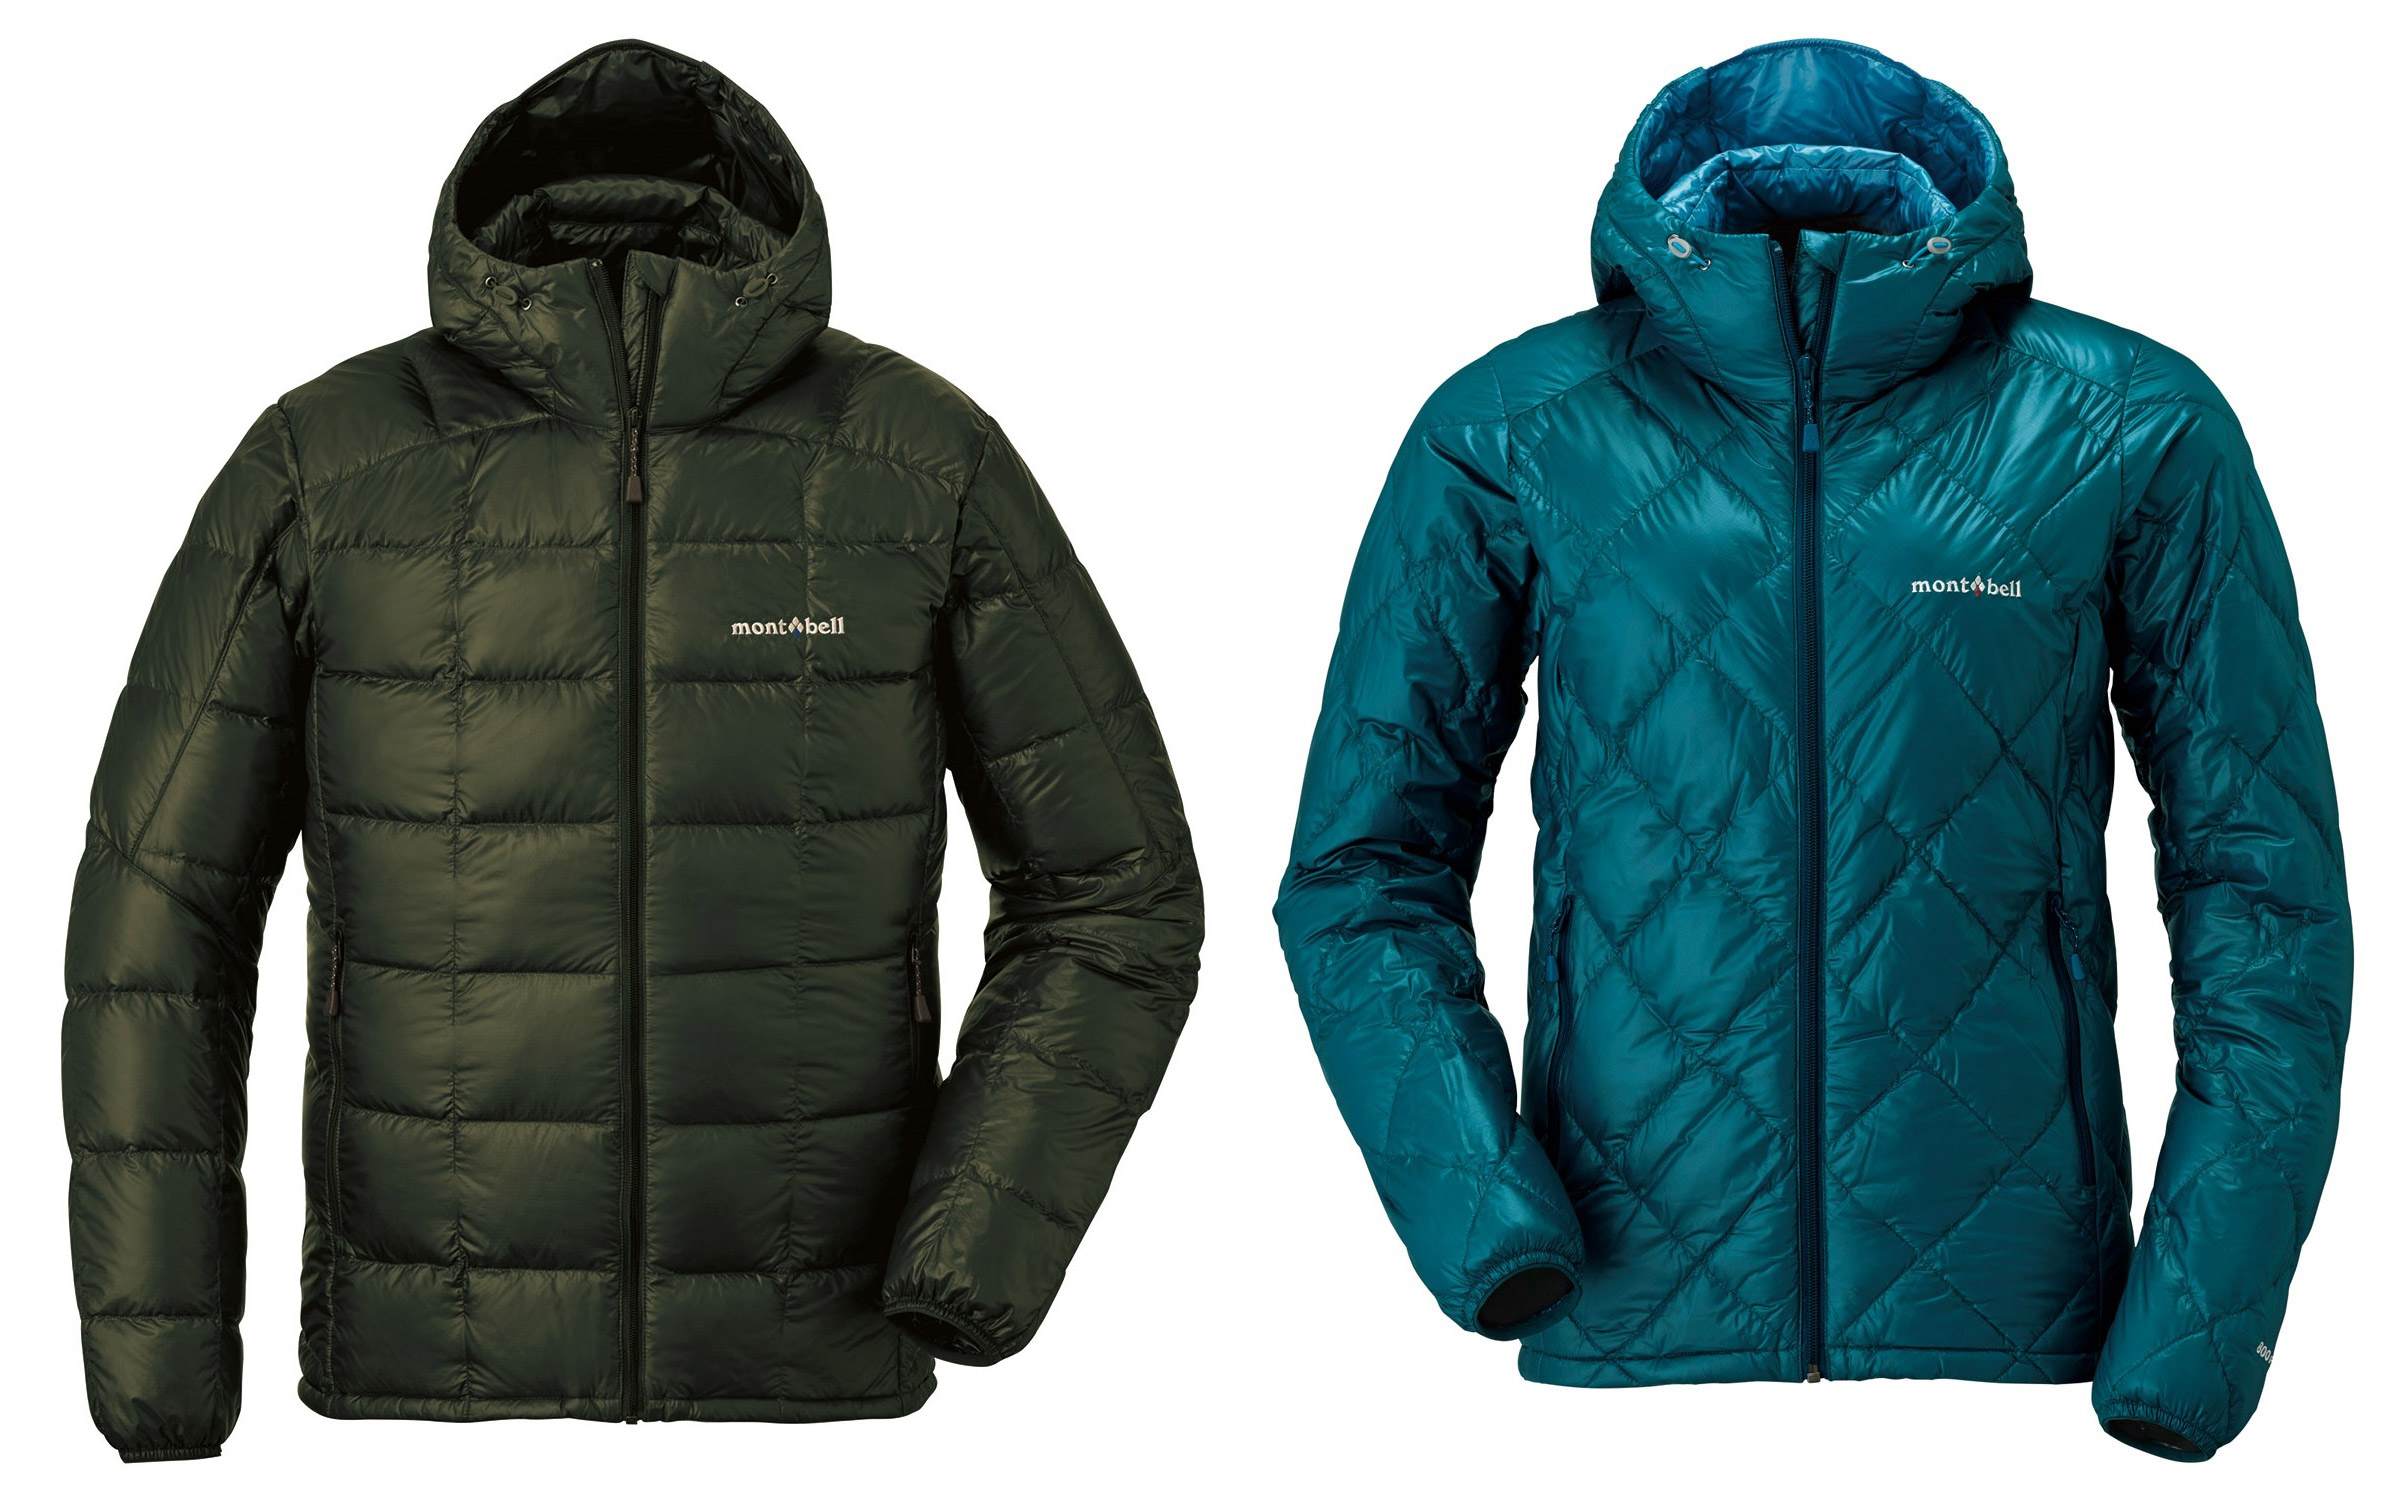 mont.bell superior down parka